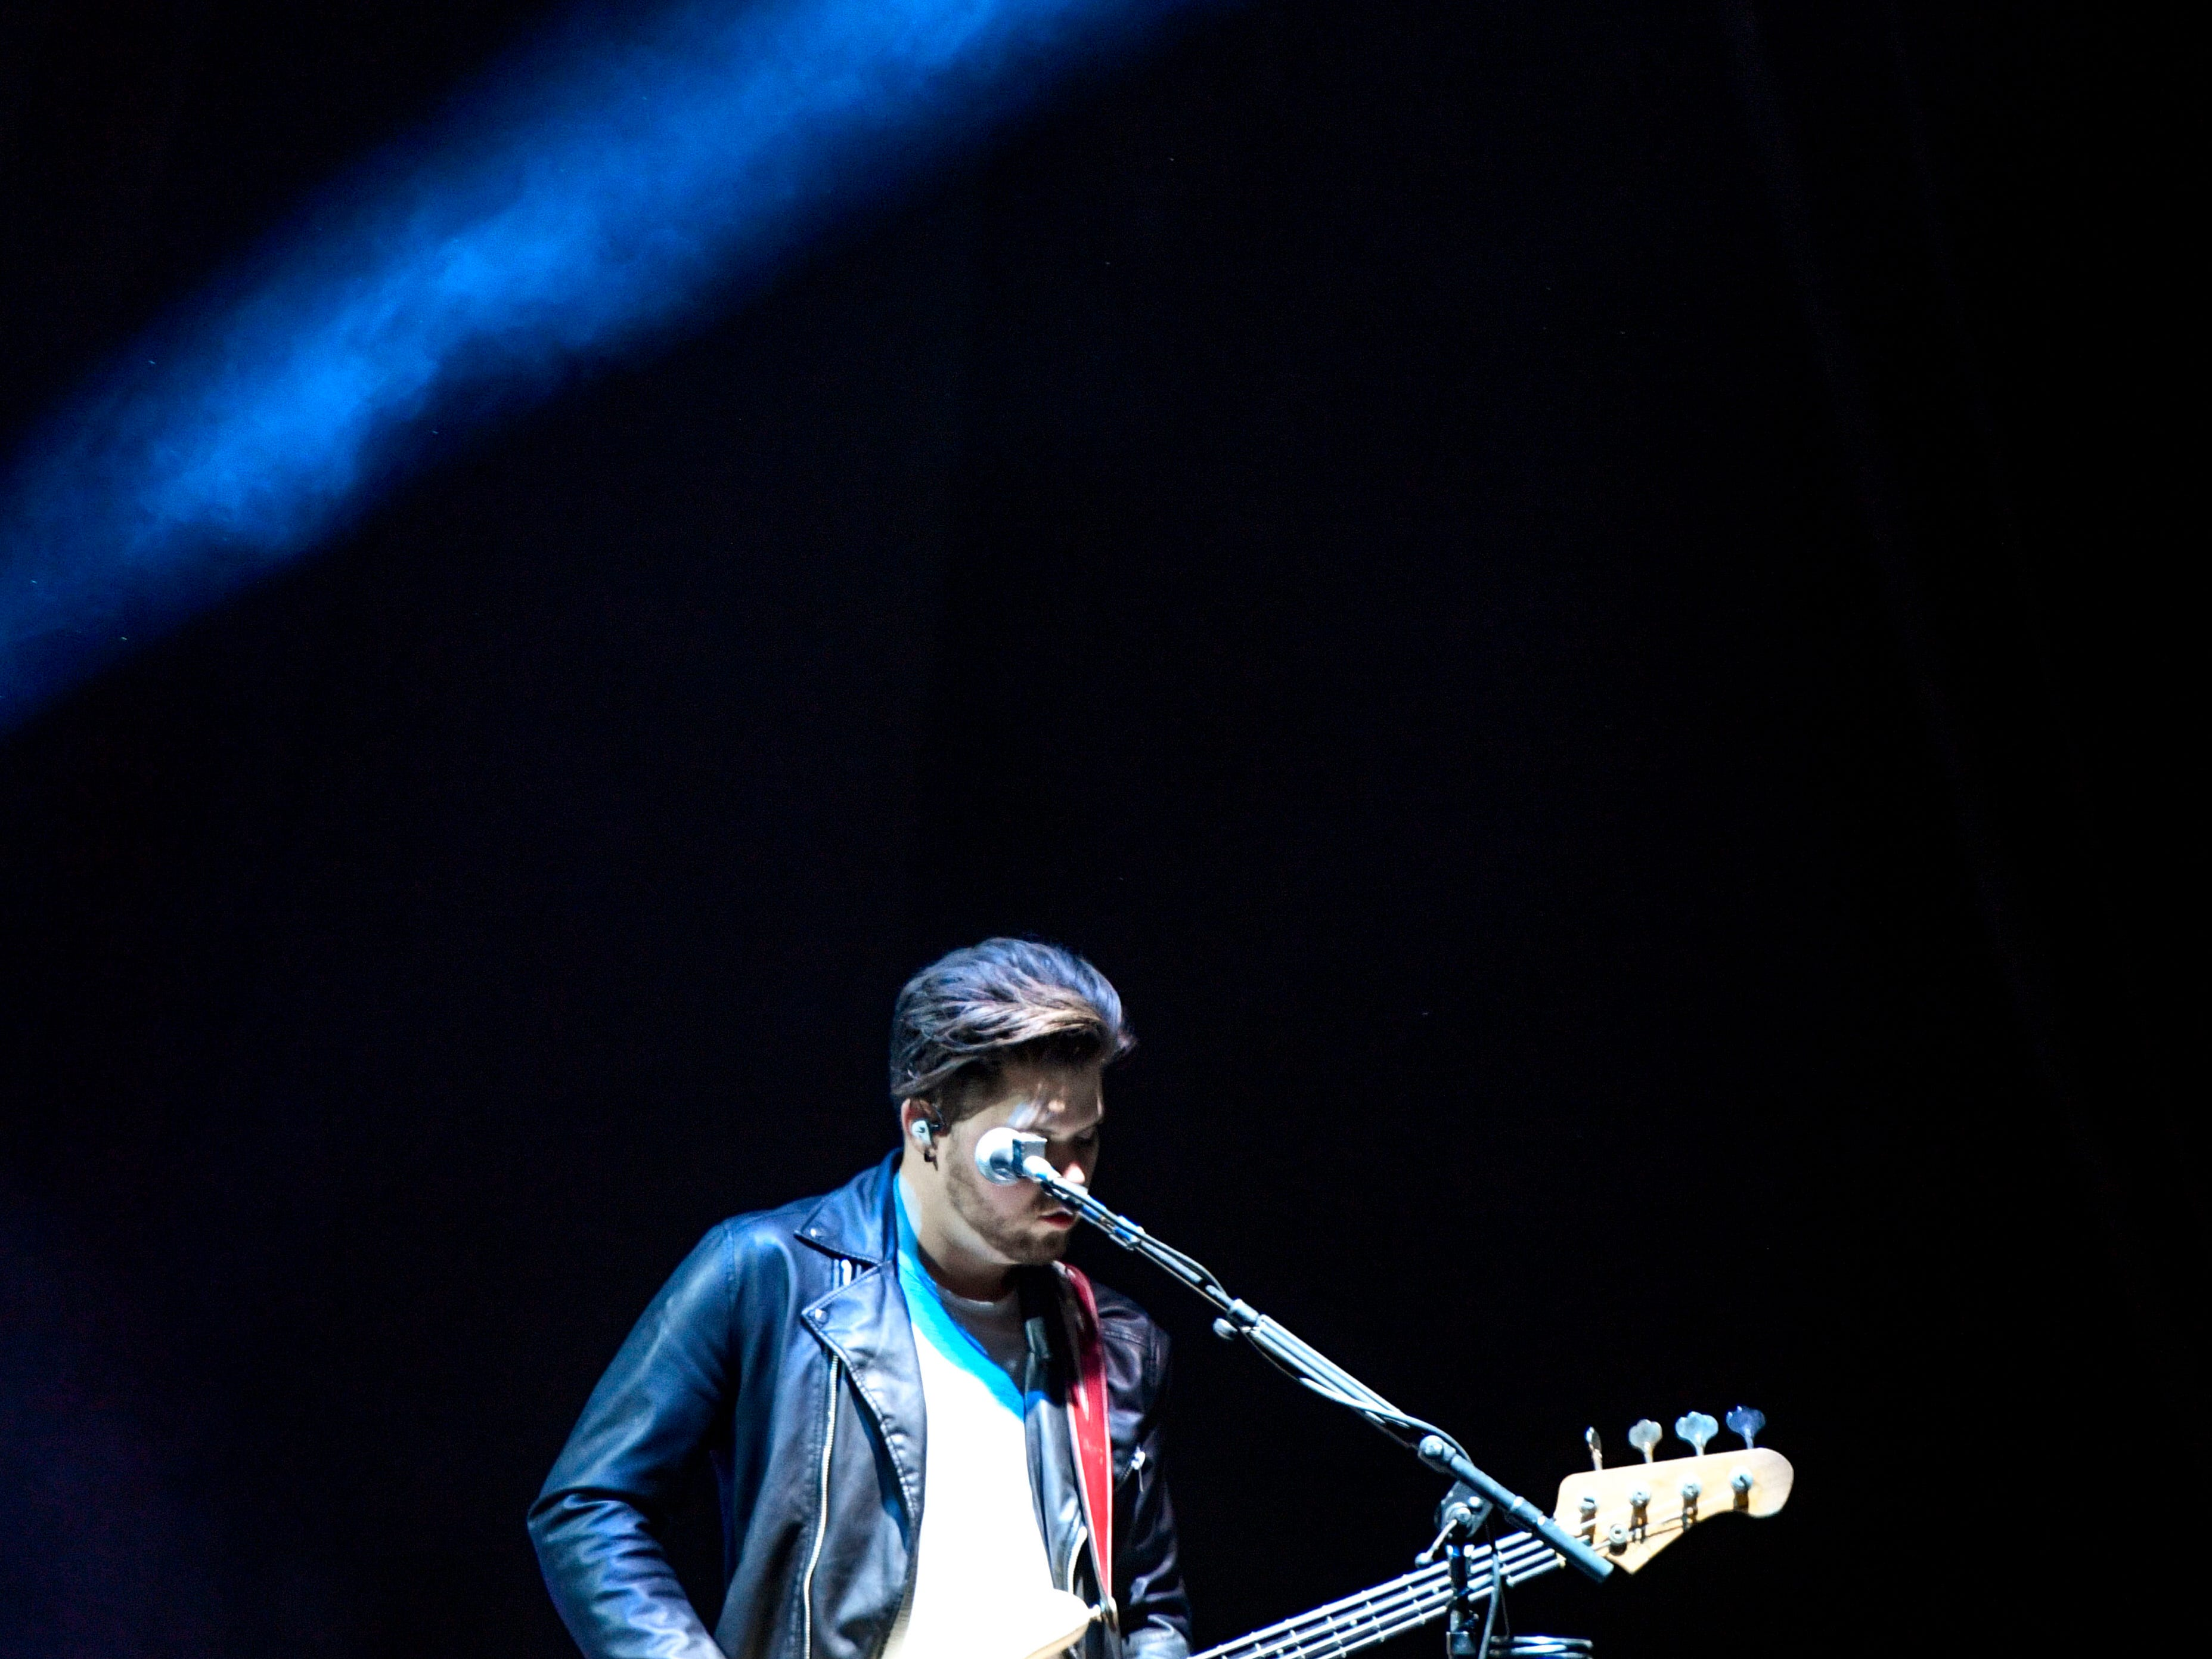 A guitarist in Kane Brown's band performs as an opening act for Chris Young at Bridgestone Arena in Nashville, Tenn., Saturday, Sept. 22, 2018.